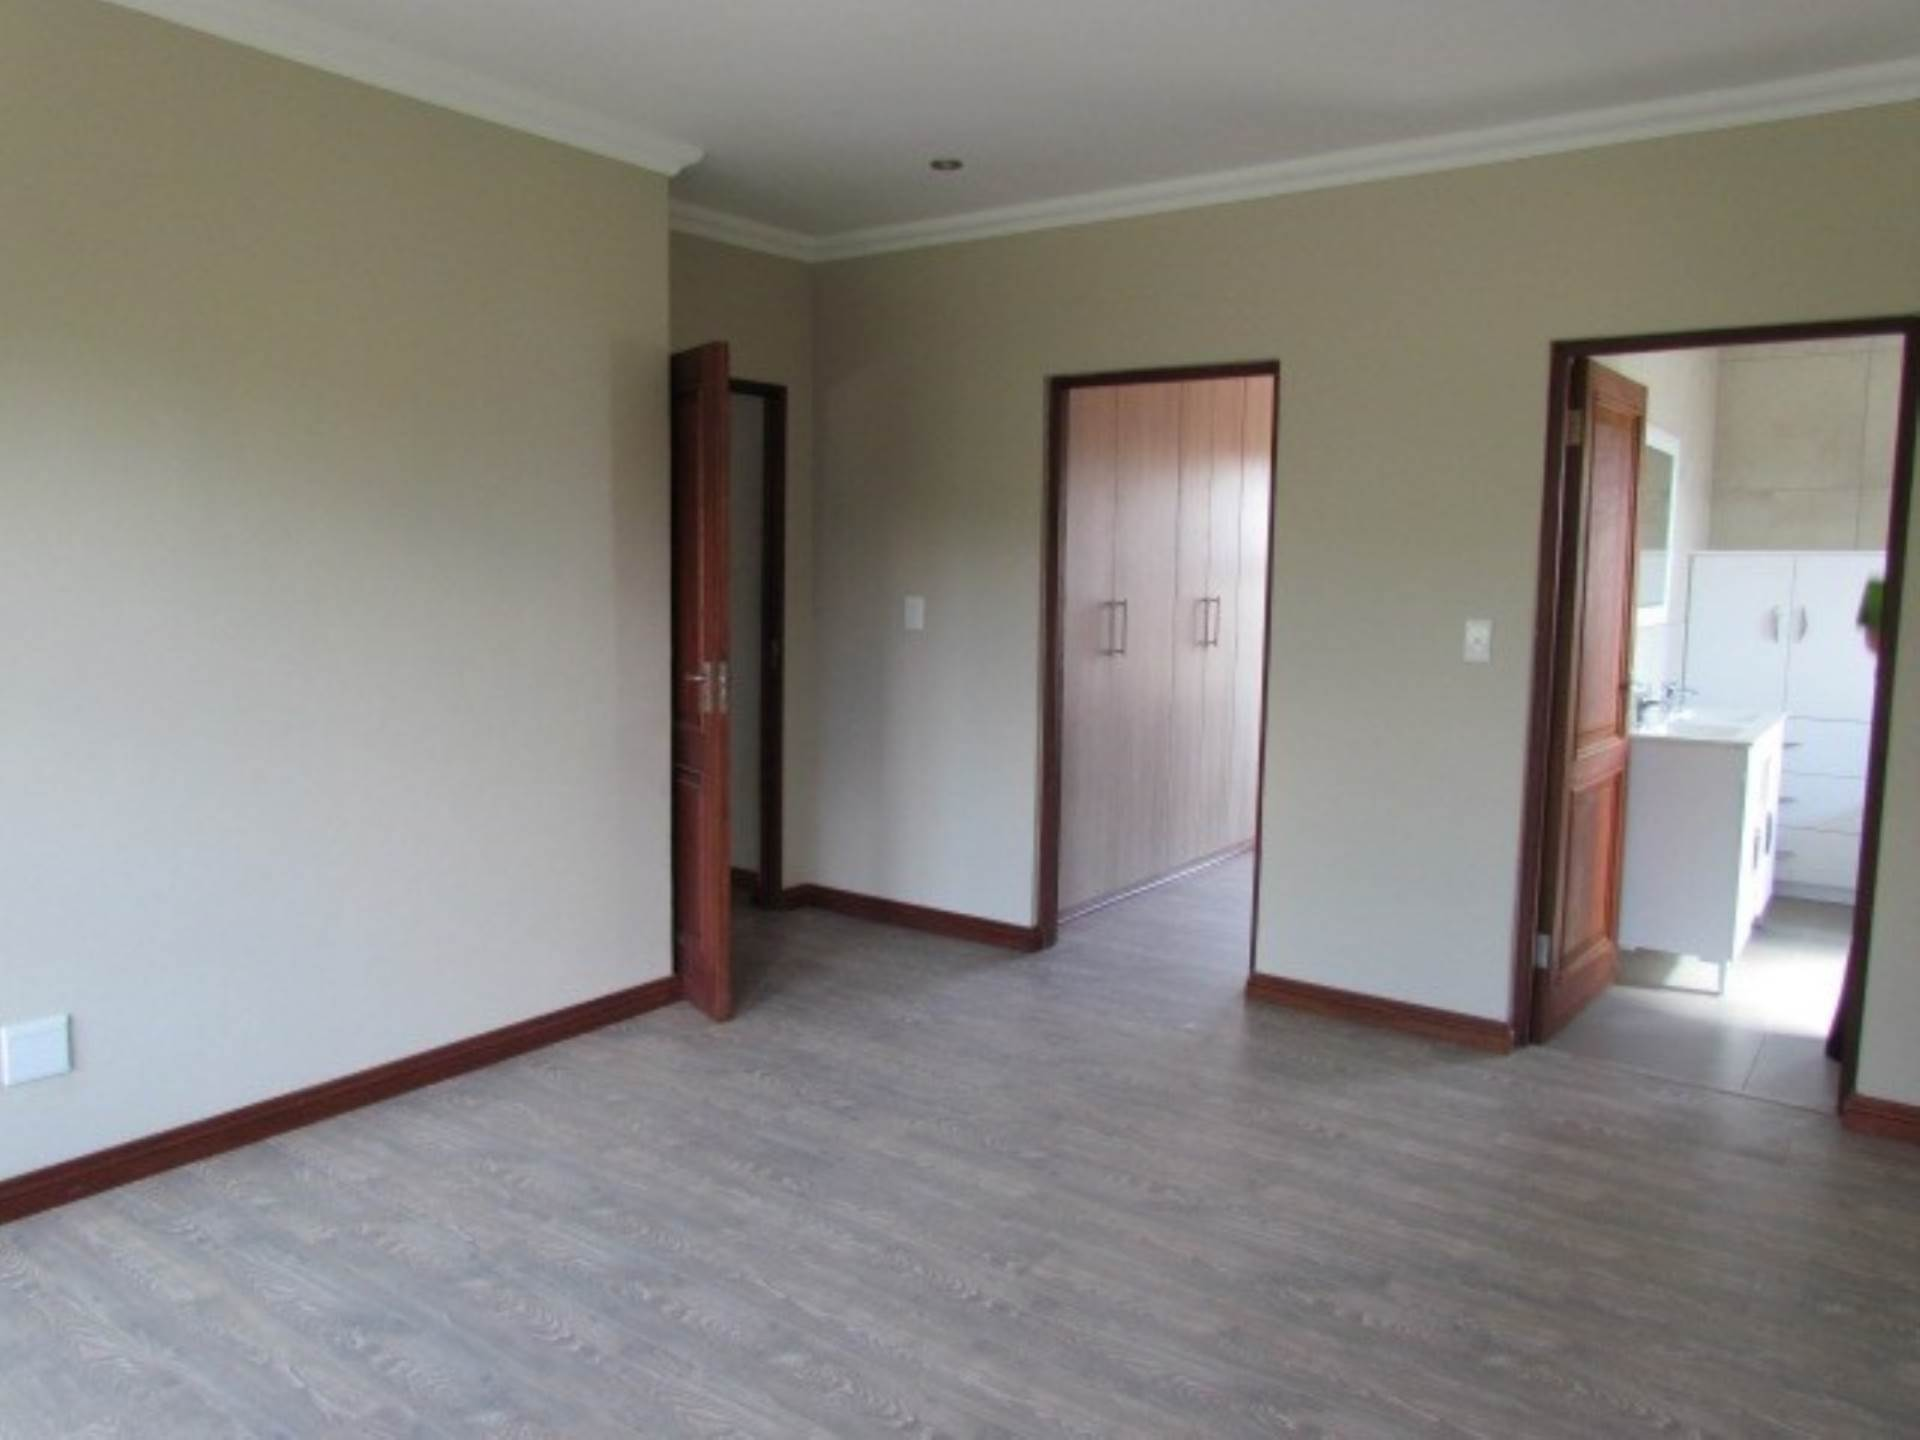 Rietvalleirand property for sale. Ref No: 13534149. Picture no 27